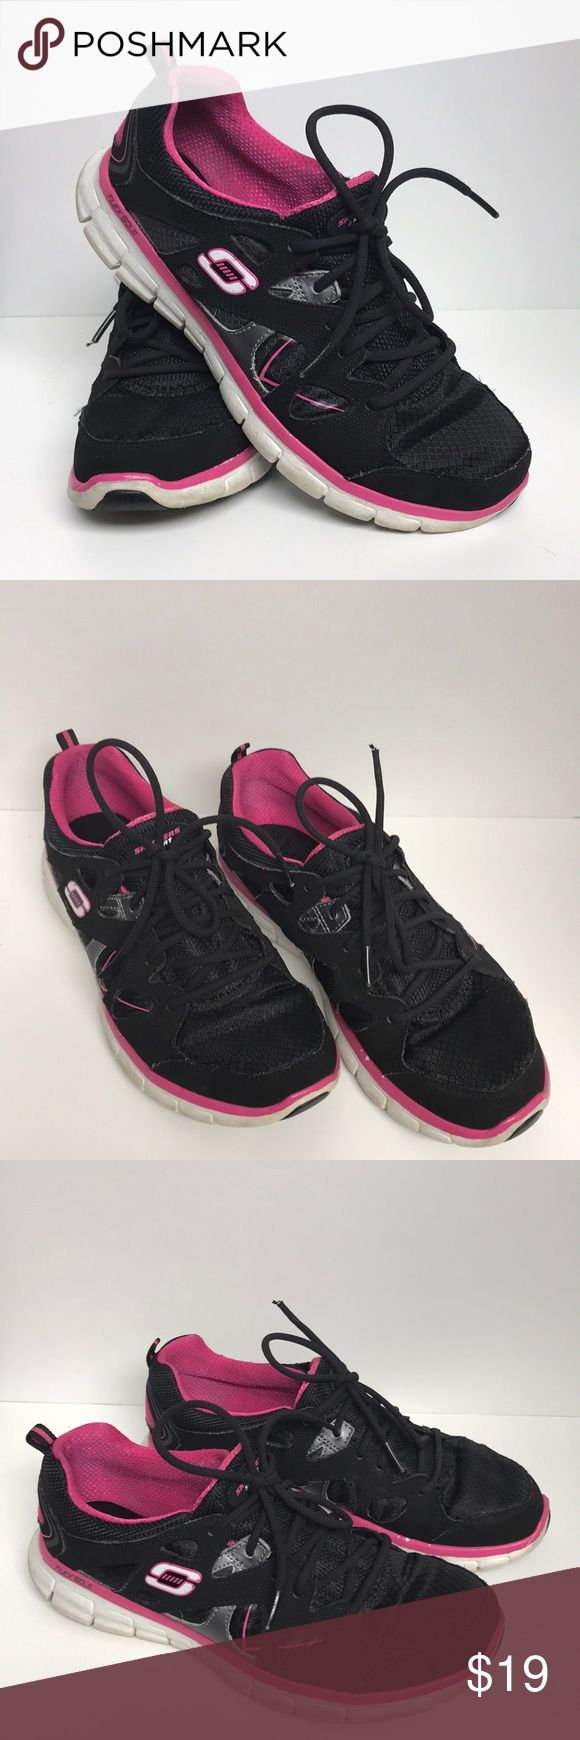 Sketchers sneakers black & pink size 8.5 Sketchers sneakers with memory foam soles. Black body with pink soles. Used but have lots of life left. size 8.5 Skechers Shoes Sneakers